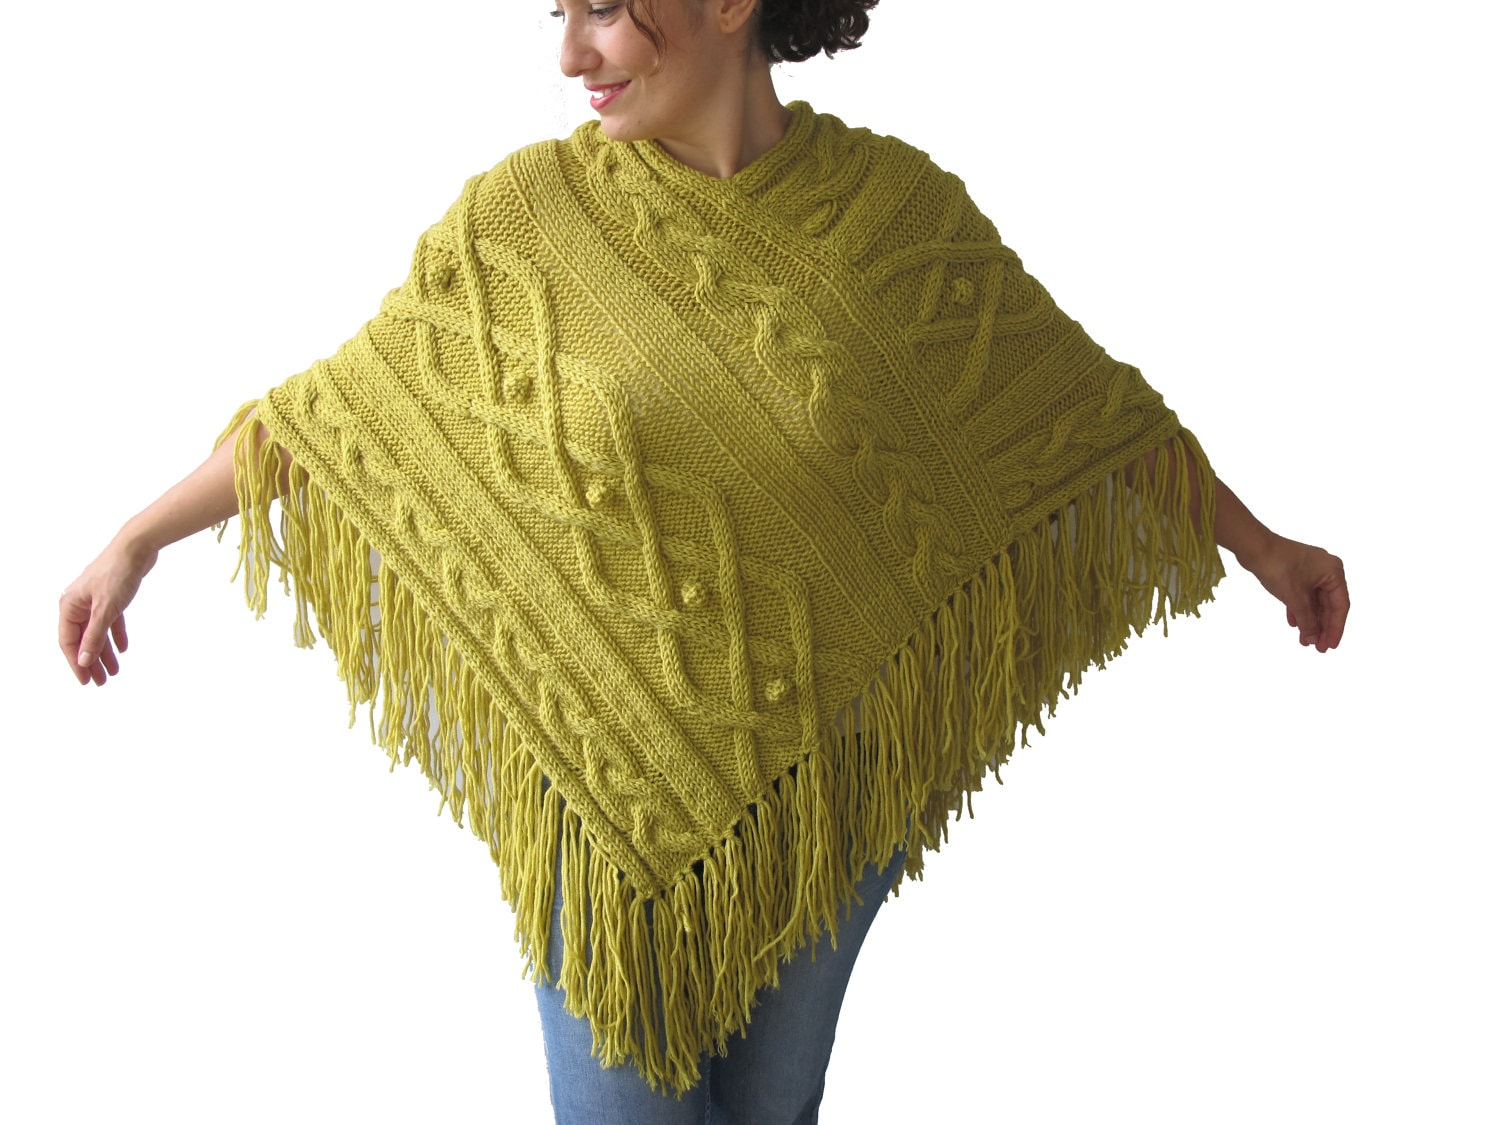 Knitting Patterns Plus Size : Citrine cable knit poncho by afra plus size over